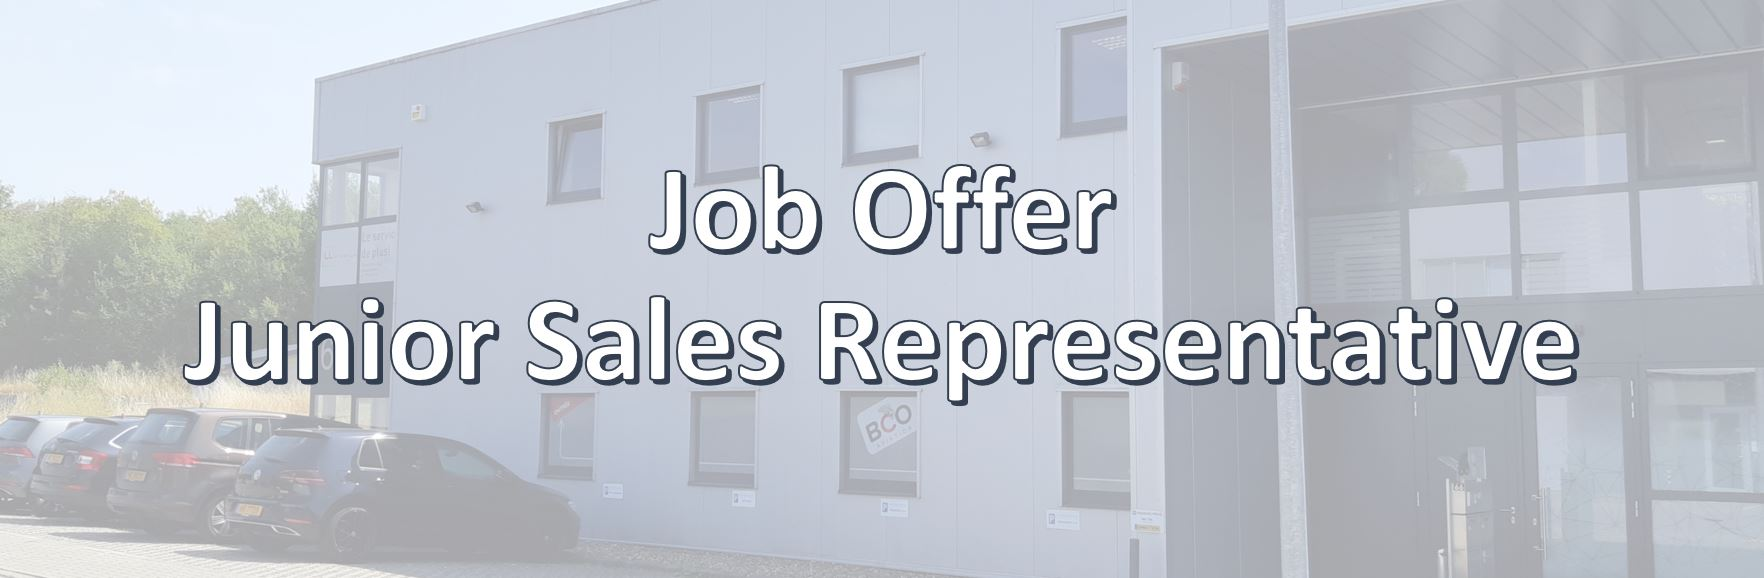 Illustration for: Job Offer: Junior Sales Representative within BCO Aviation (Closed)